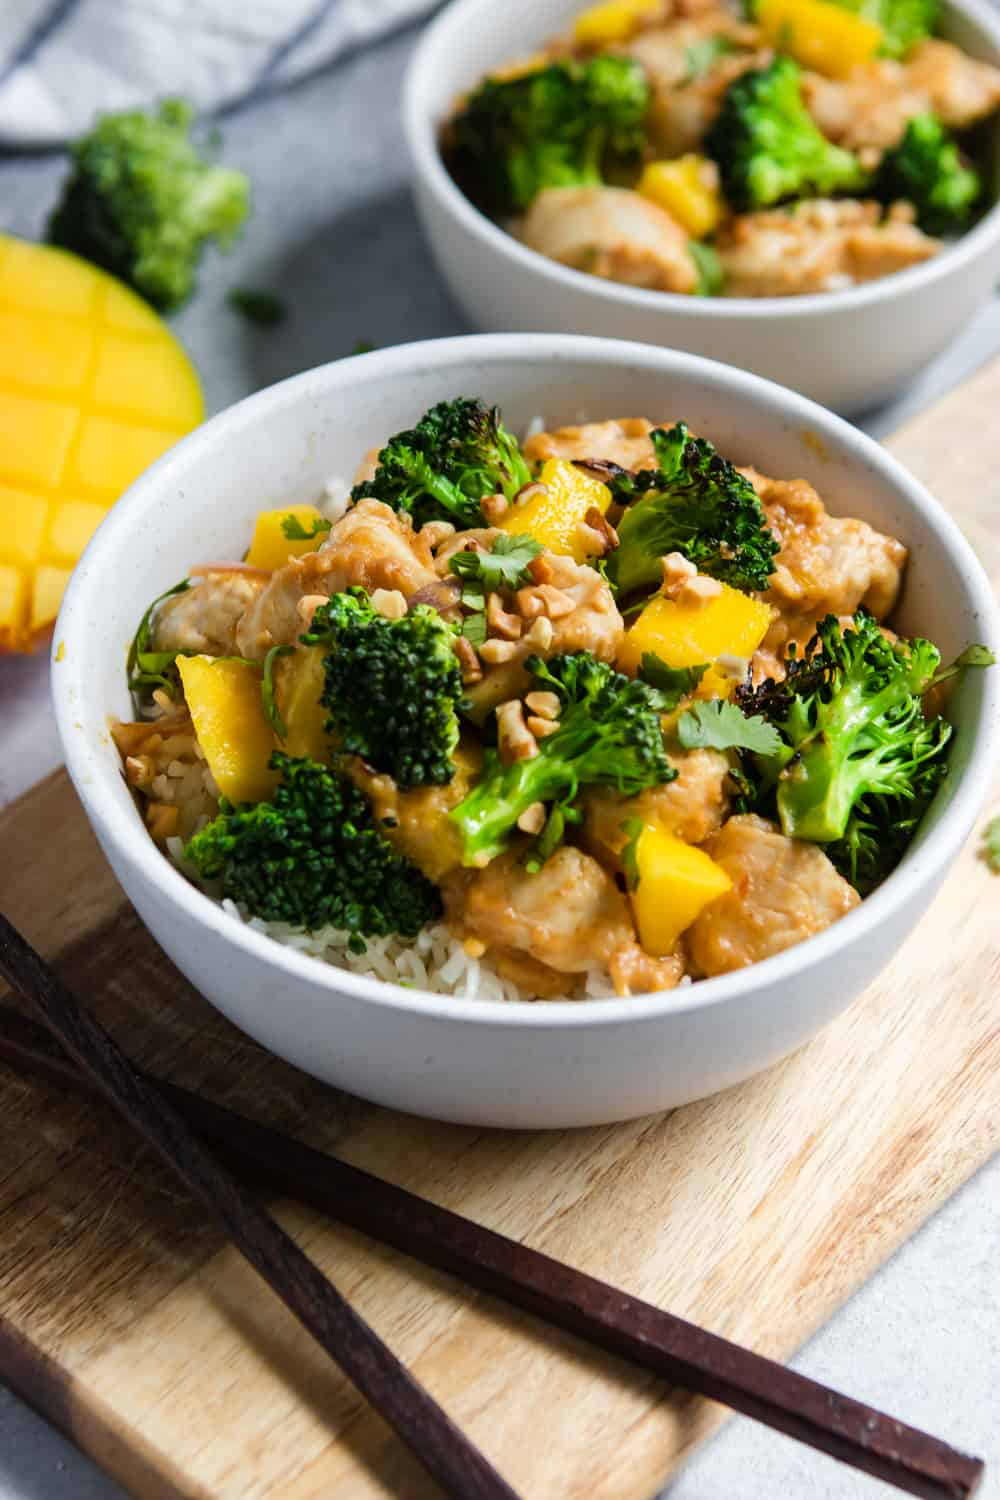 Bowl of stir fry with broccoli, mango and chicken.